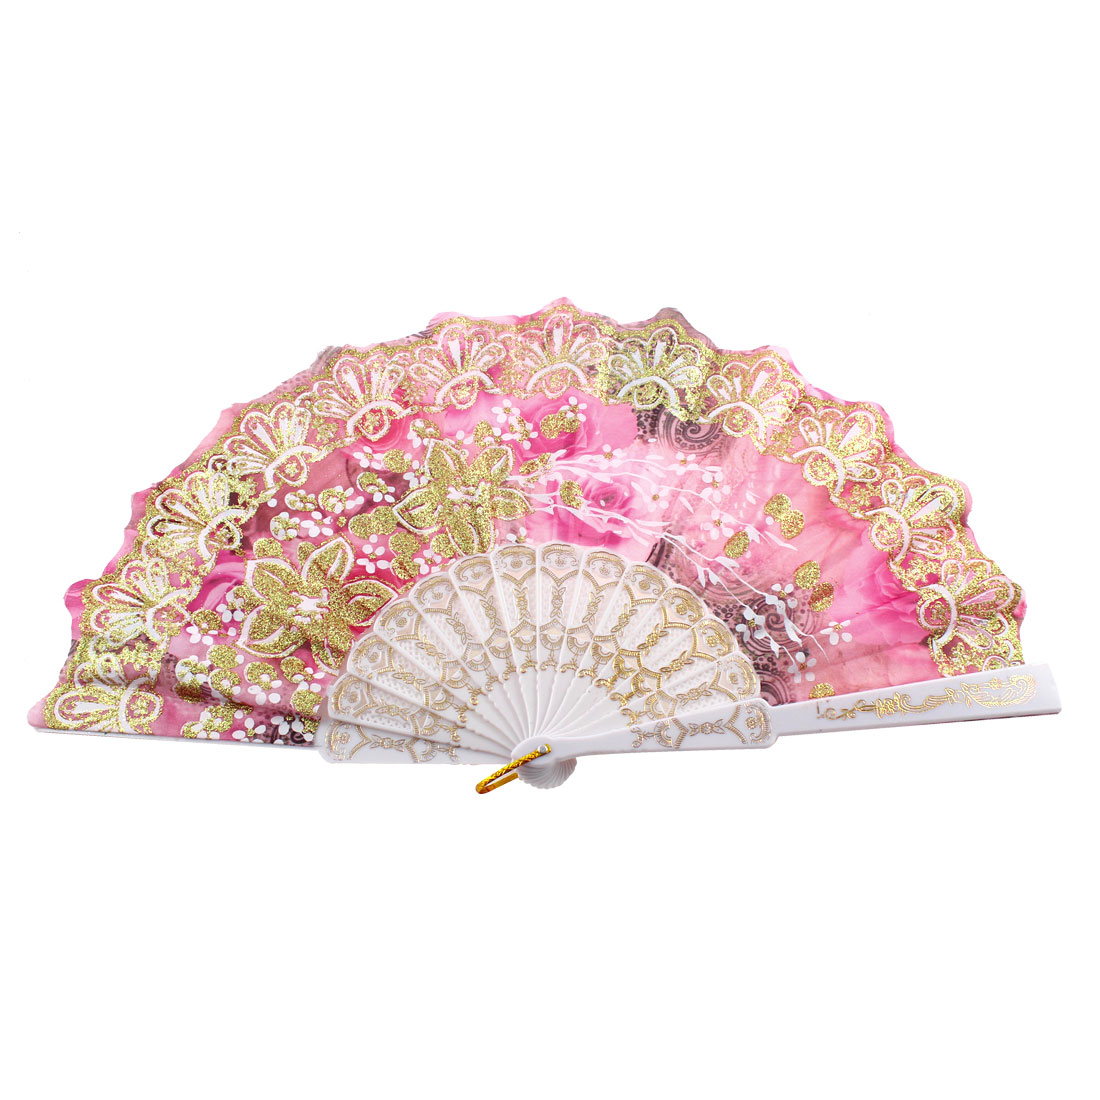 Hollow Out Rib Chinese Style Glittery Powder Adorn Rose Print Hand Fan Pink